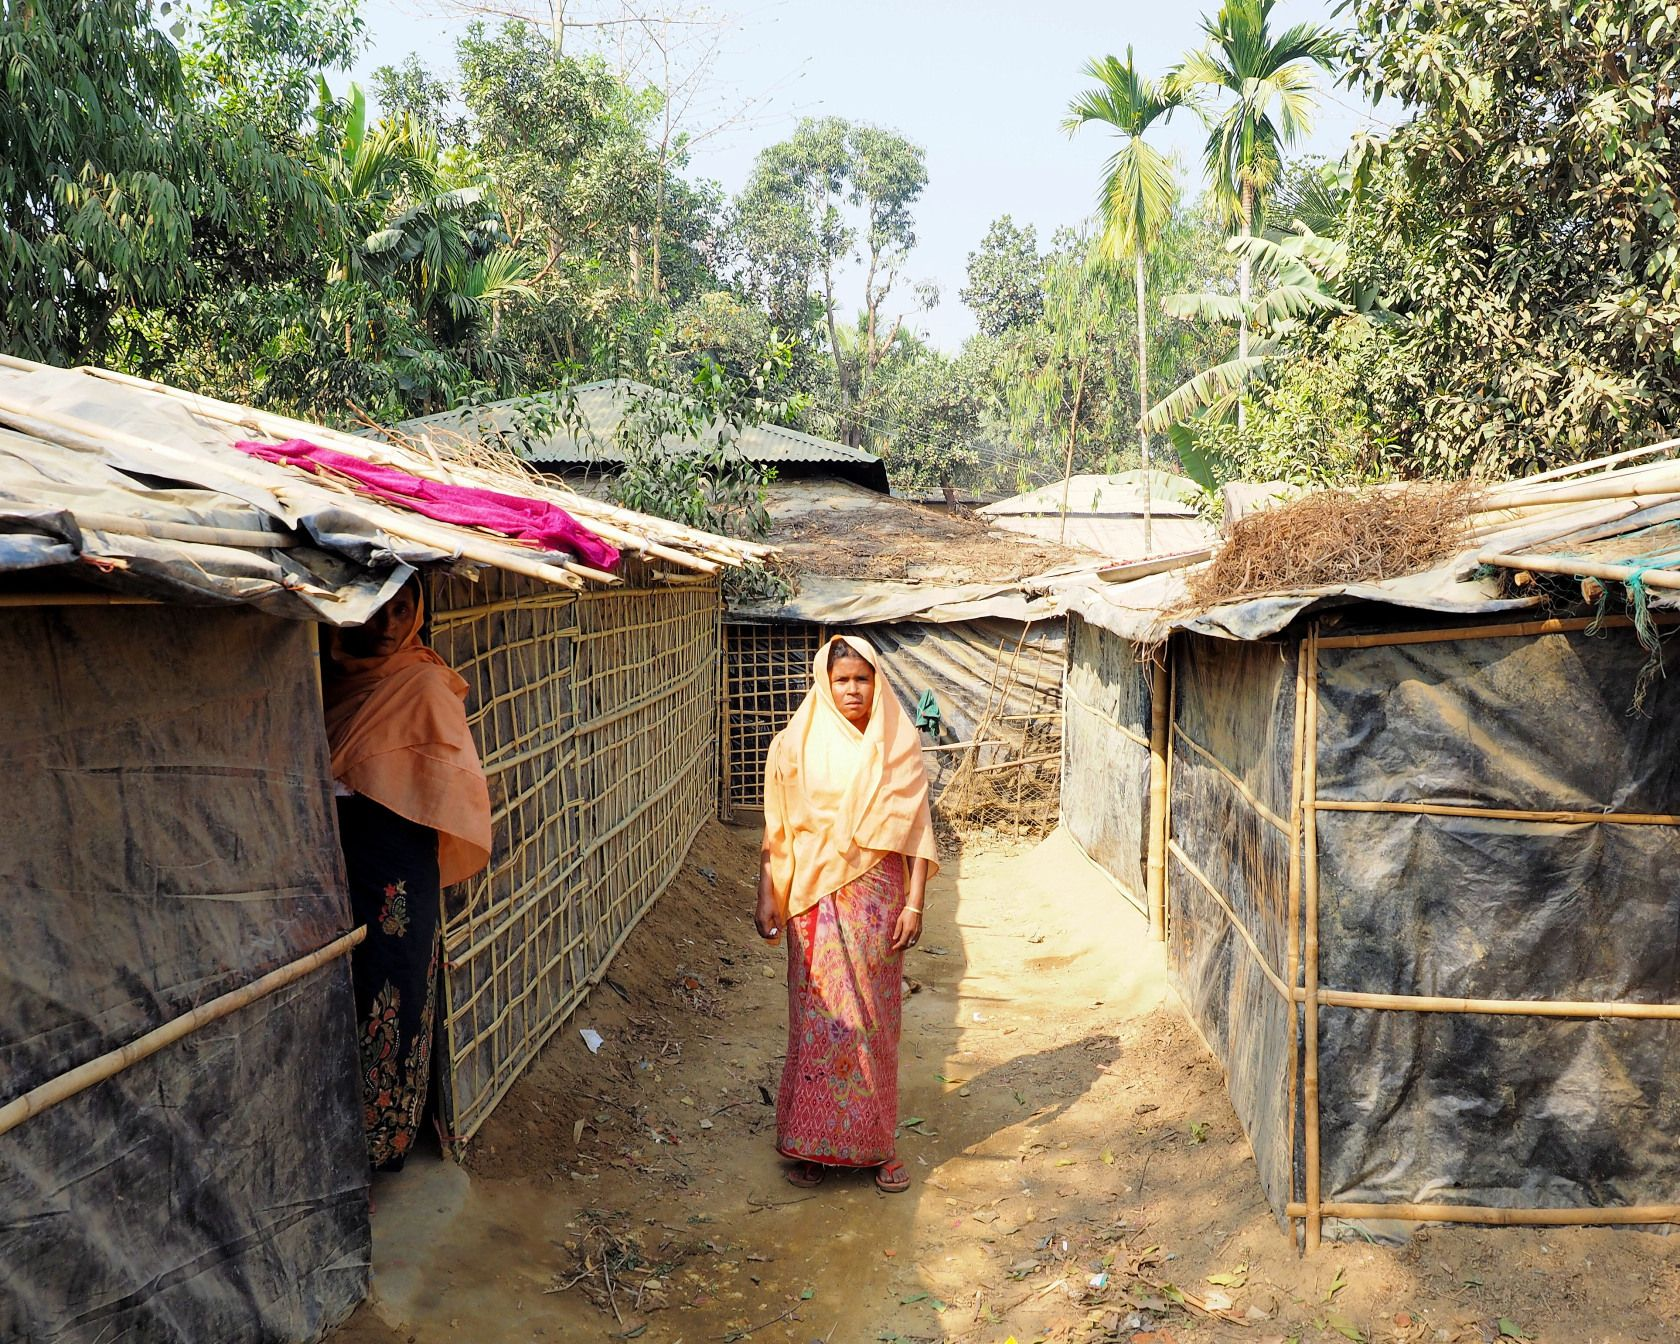 A woman in Kutupalong Refugee Camp. Since August, nearly half a million Rohingya have escaped over the Myanmar border to Bangladesh. Image by Doug Bock Clark. Bangladesh, 2017.